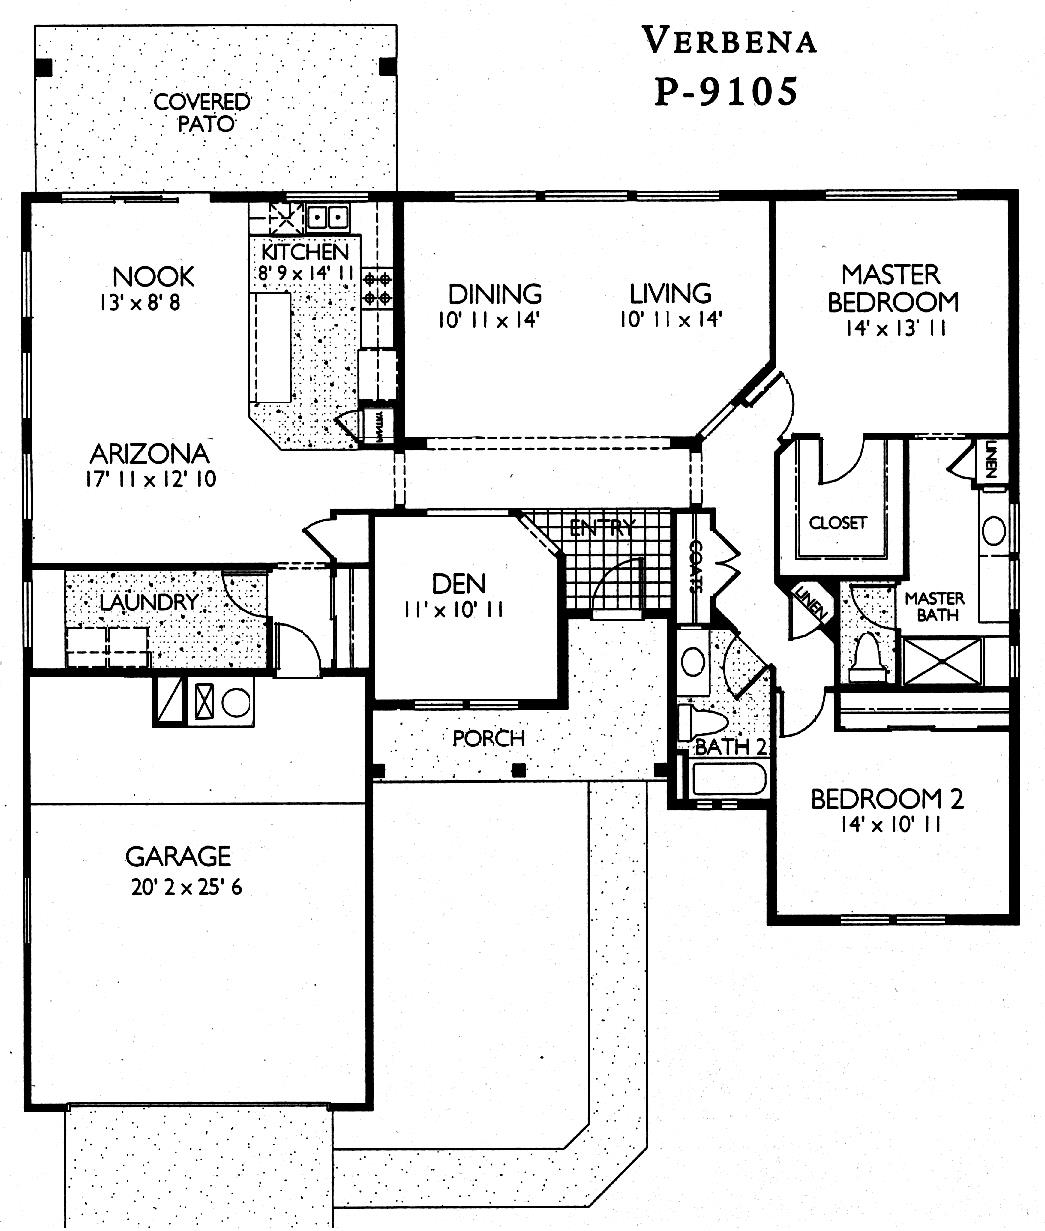 Sun City Grand Verbena floor plan, Del Webb Sun City Grand Floor Plan Model Home House Plans Floorplans Models in Surprise Phoenix Arizona AZ Ken Meade Realty Kathy Anderson